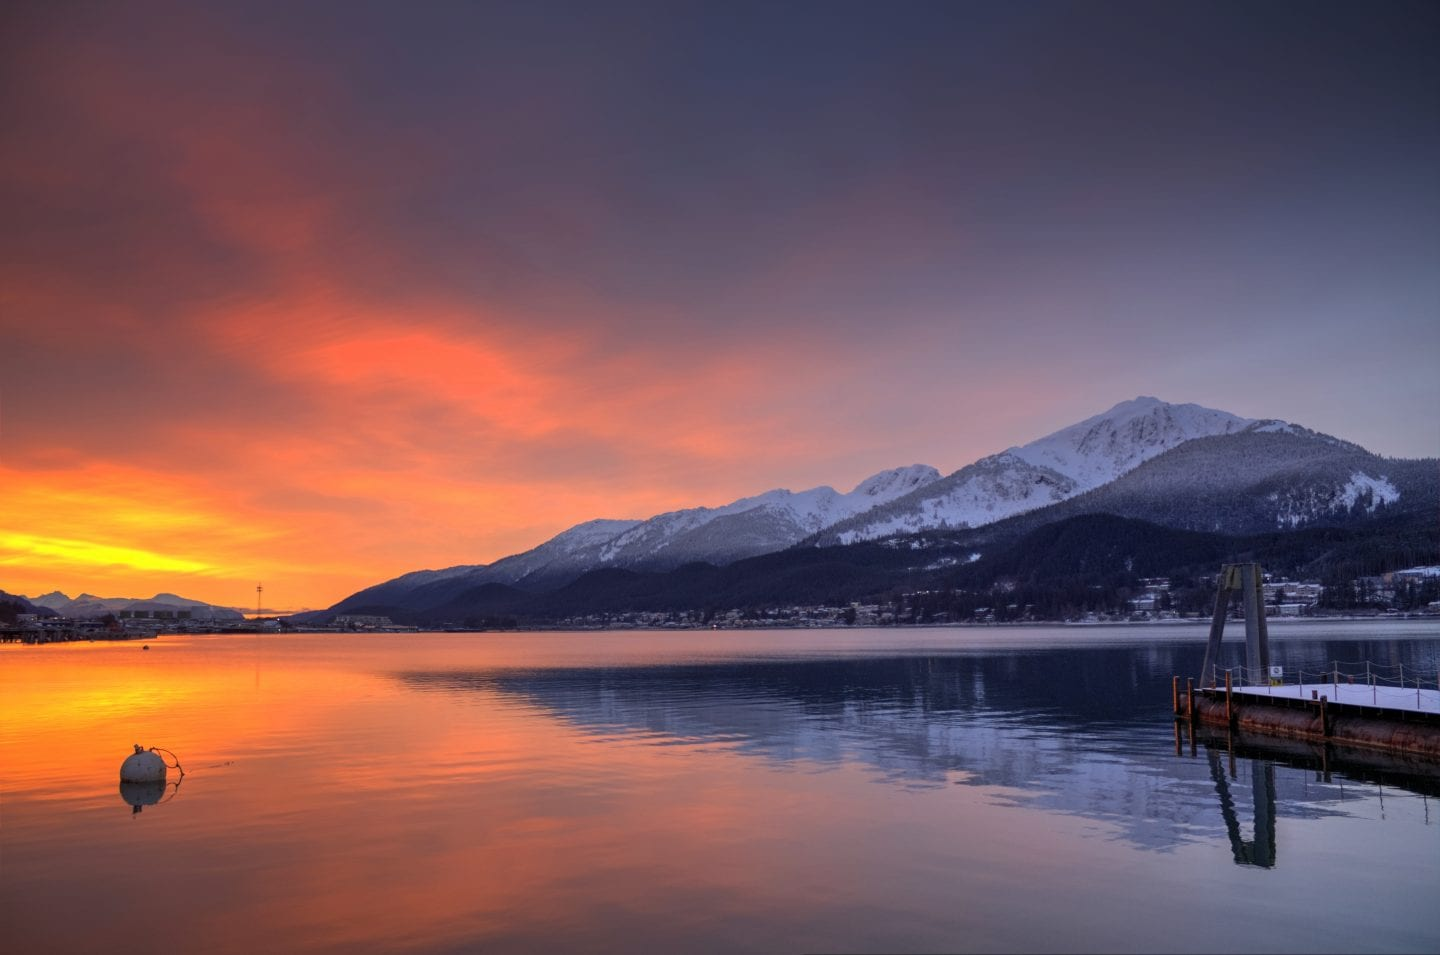 Things To Do In Juneau: watch a sunrise